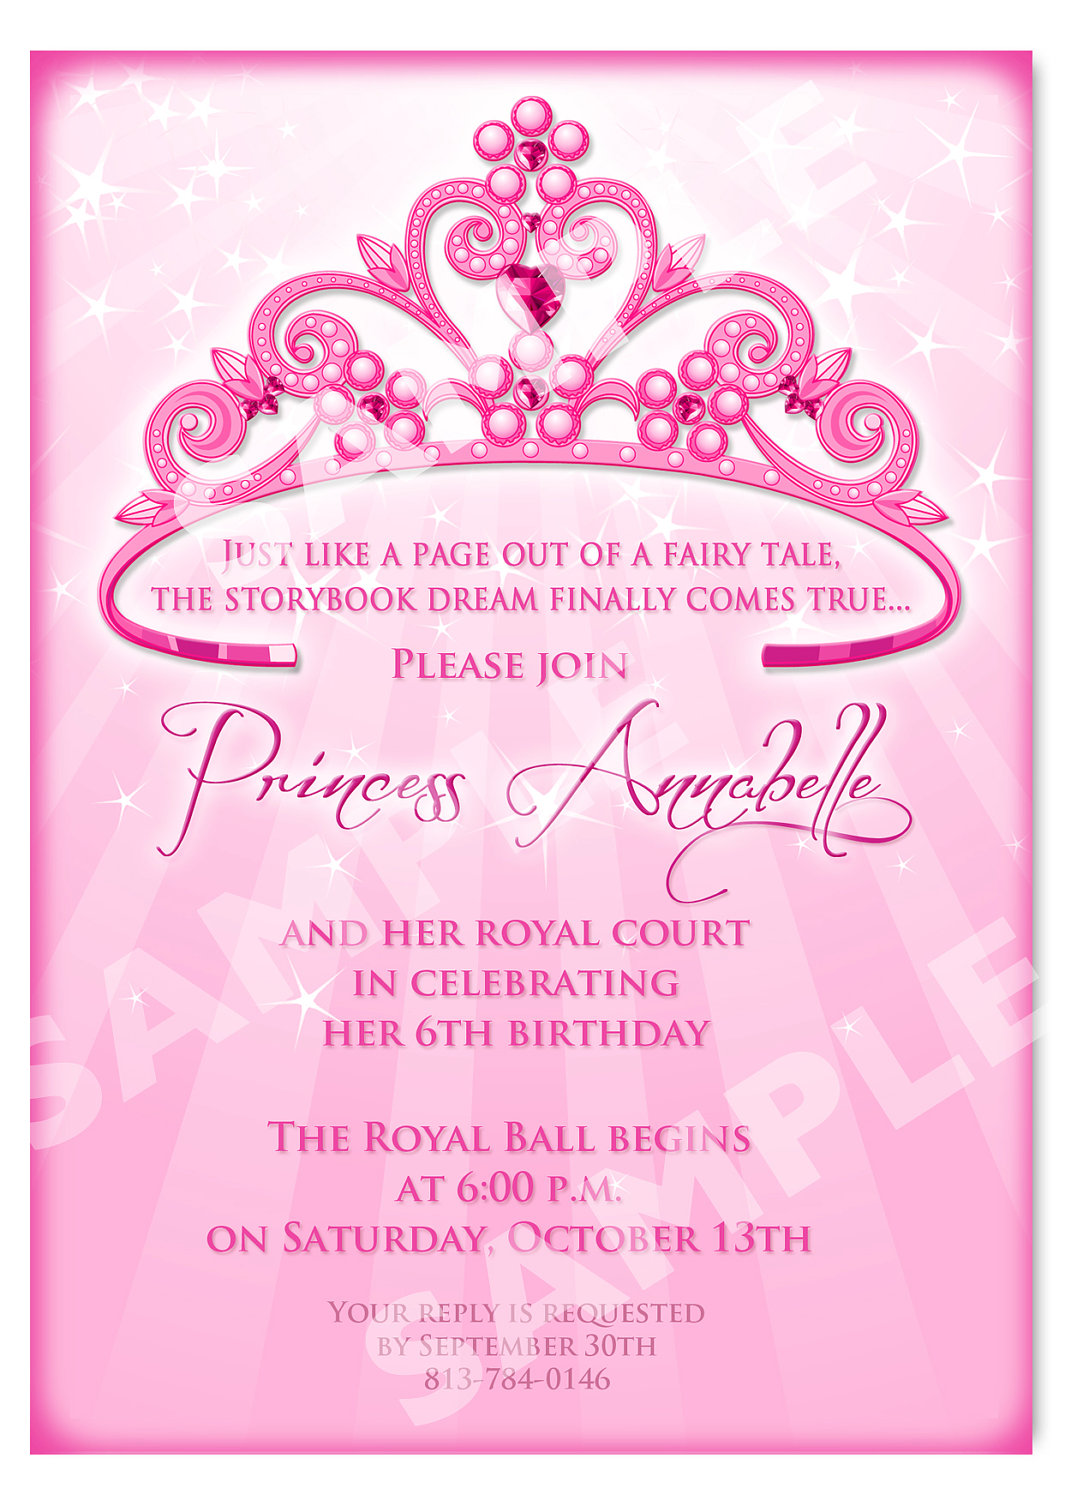 photo about Disney Princess Birthday Invitations Free Printable called No cost Printable Princess Birthday Invites  DolanPedia